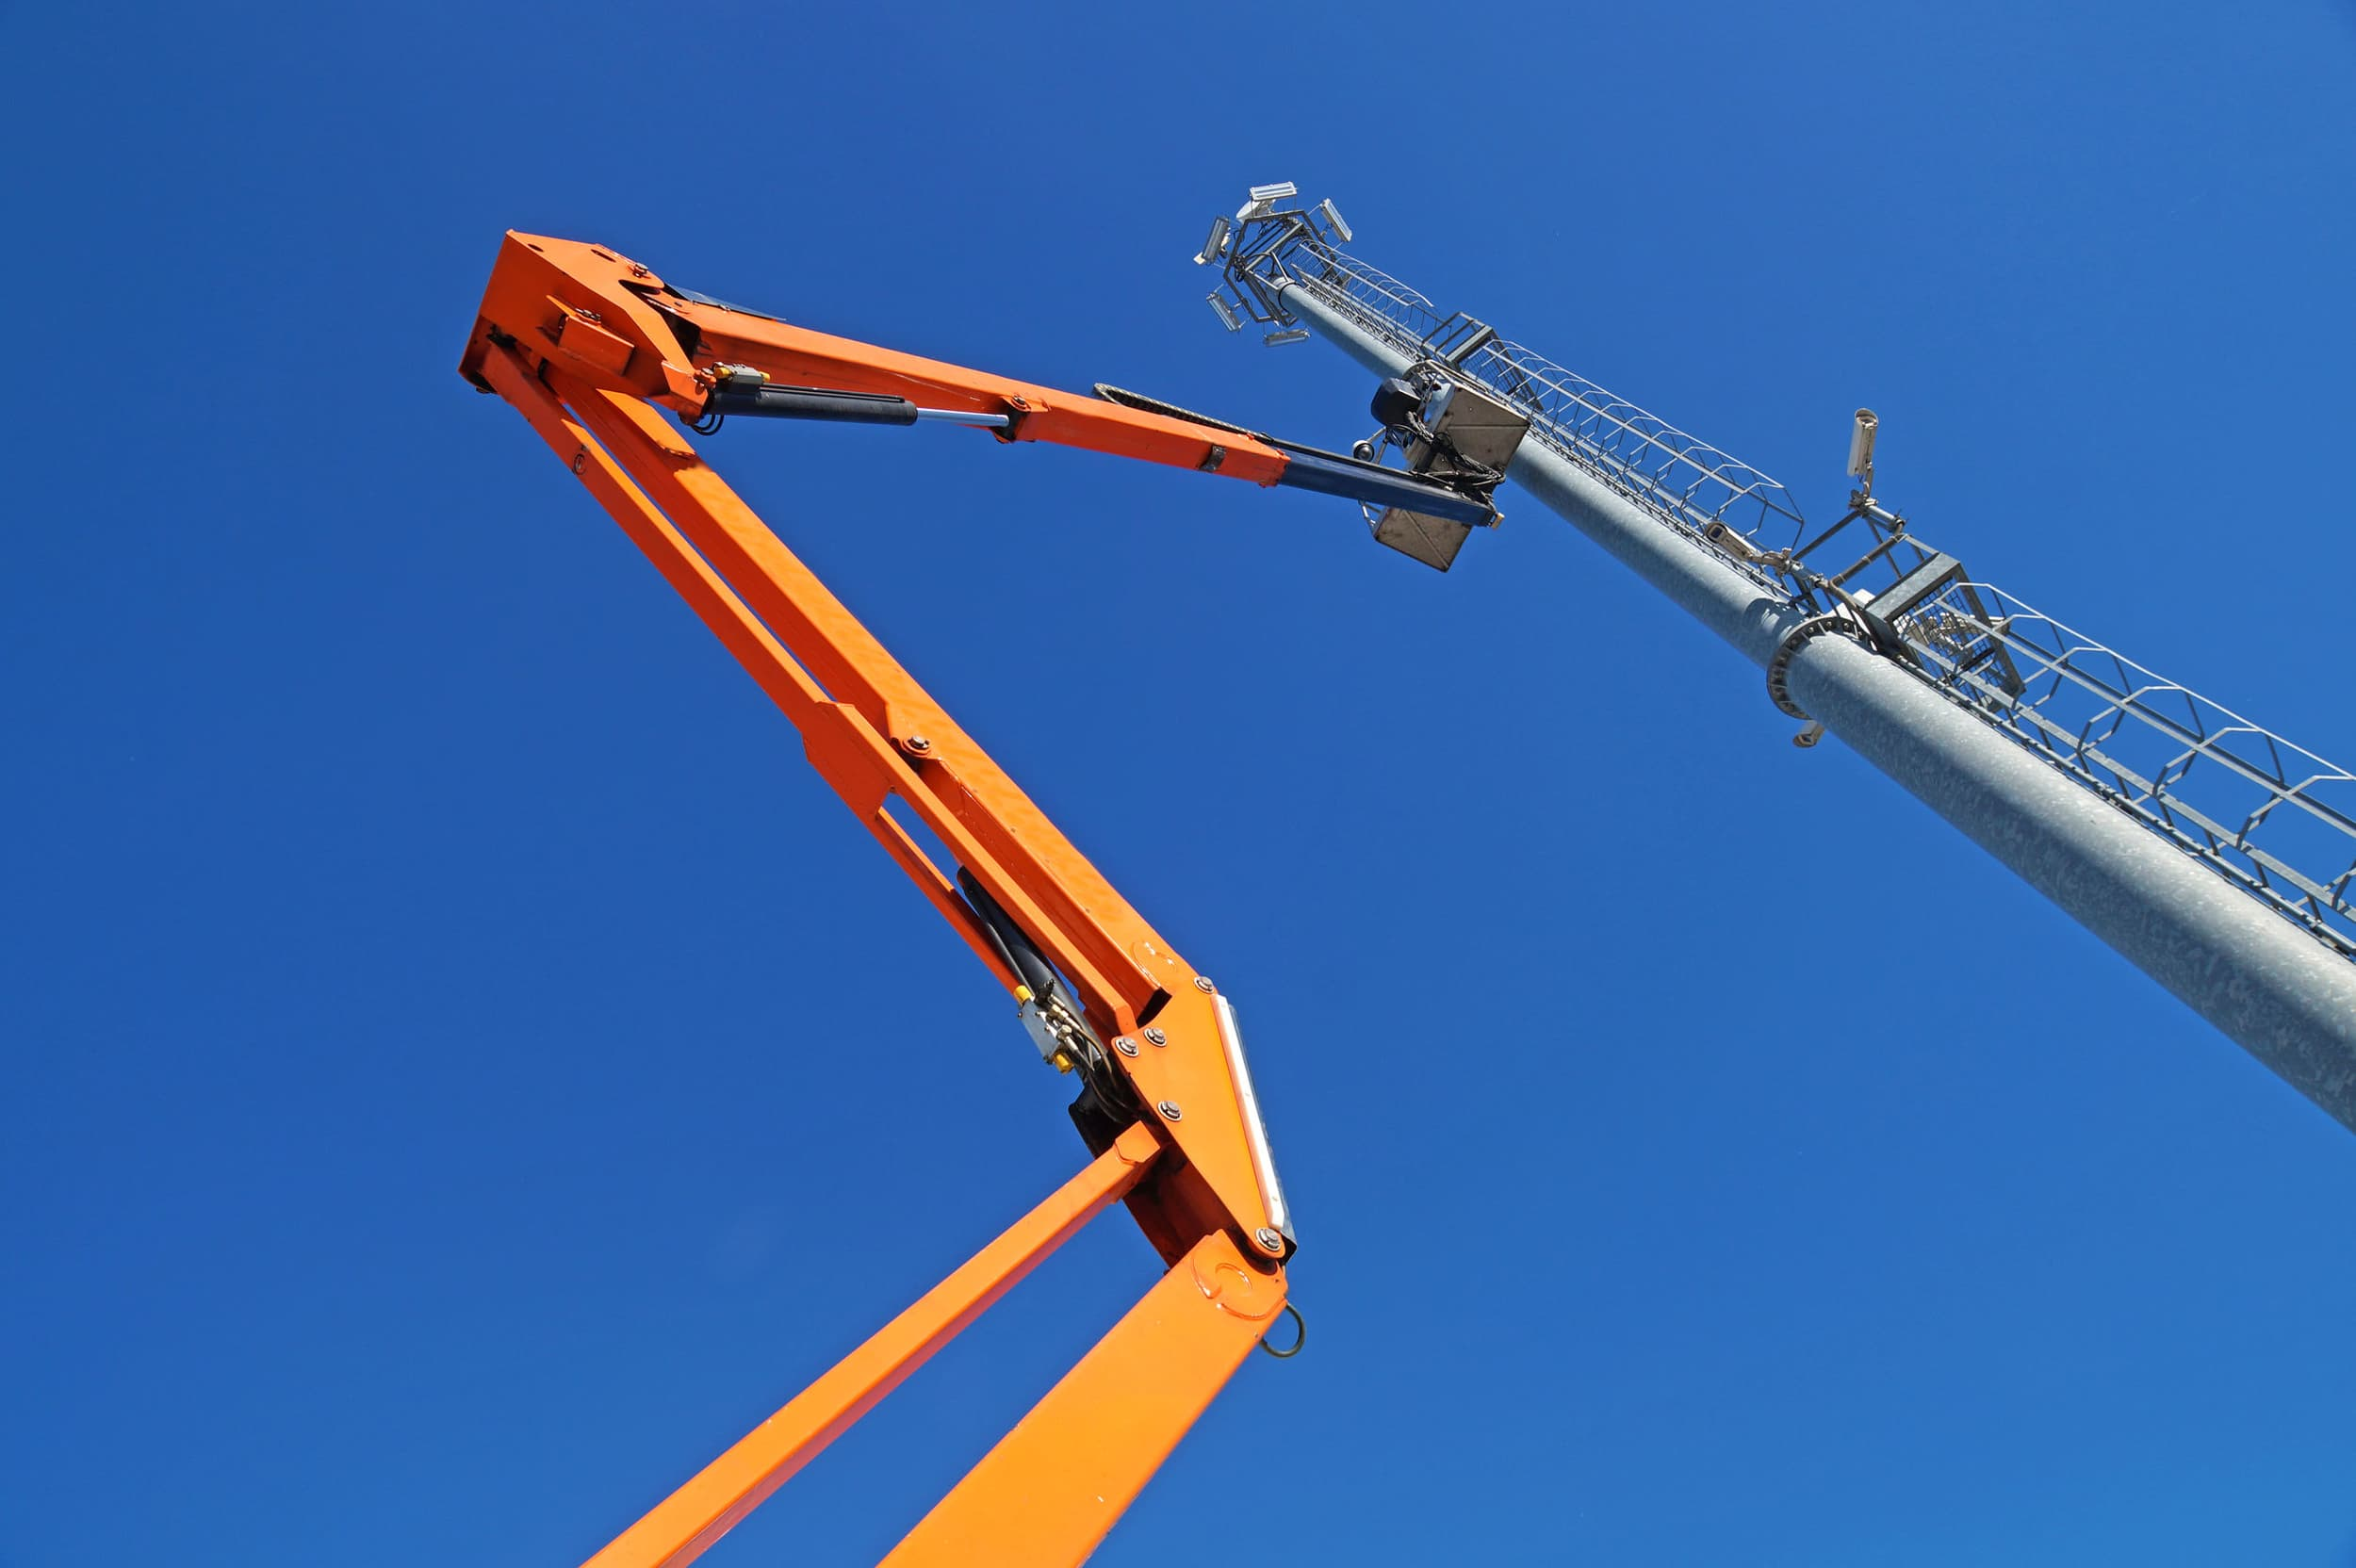 Compliance Training Online Aerial Boom Lifts Safety course